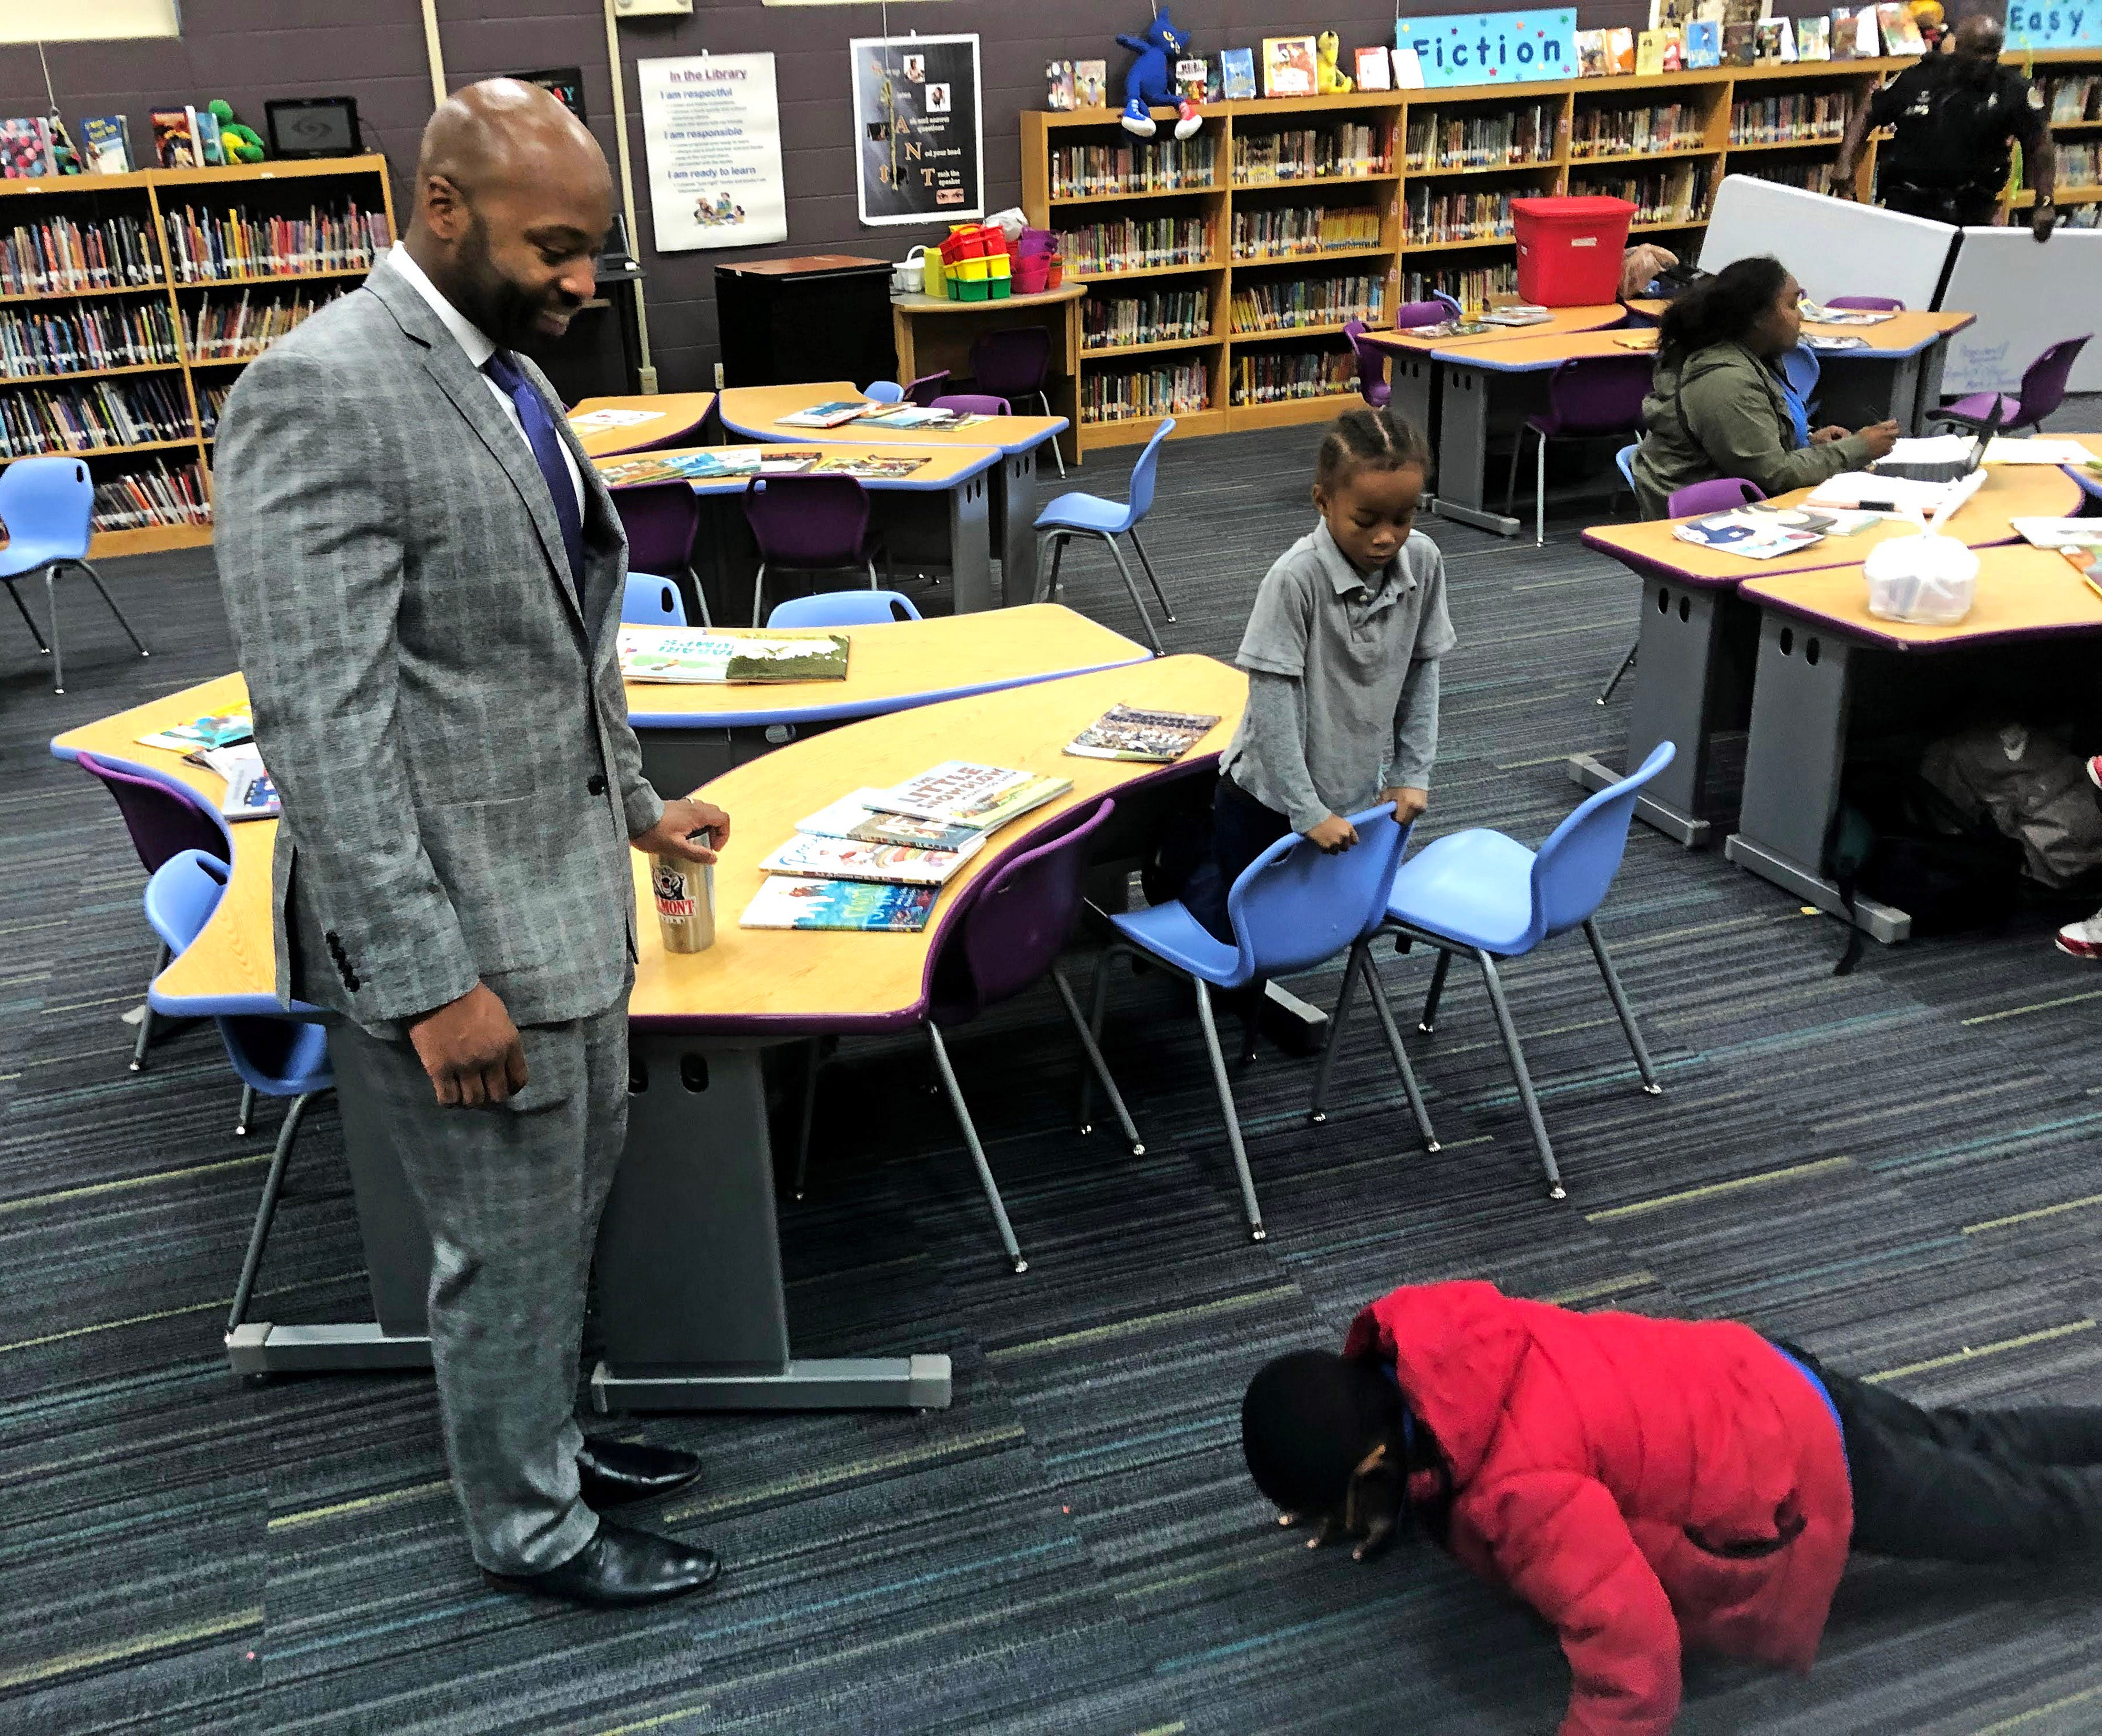 Xavier Purdy, 33, was a first-time participant in Fatherhood Fridays. Purdy is with I'zaa Bryant and Tyrell Kirkwood, who is doing pushups.